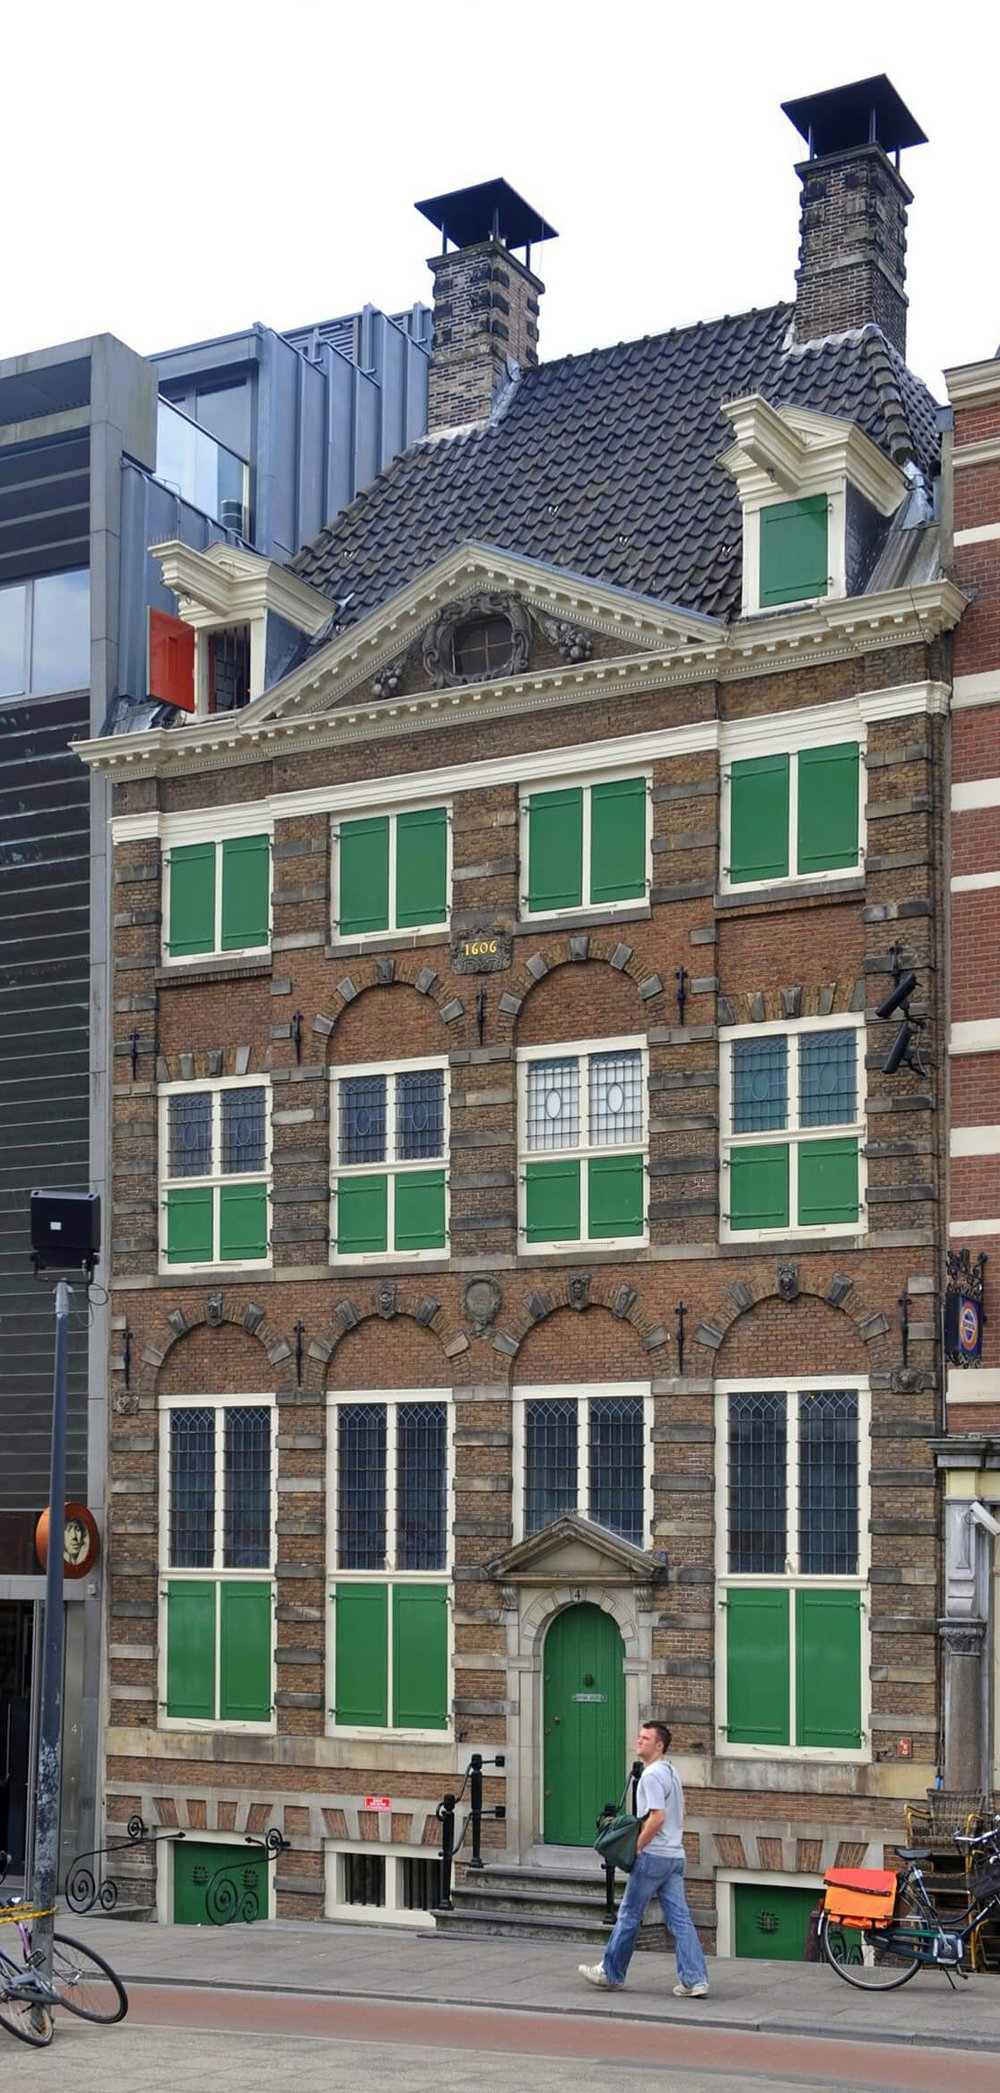 Rembrandt's house